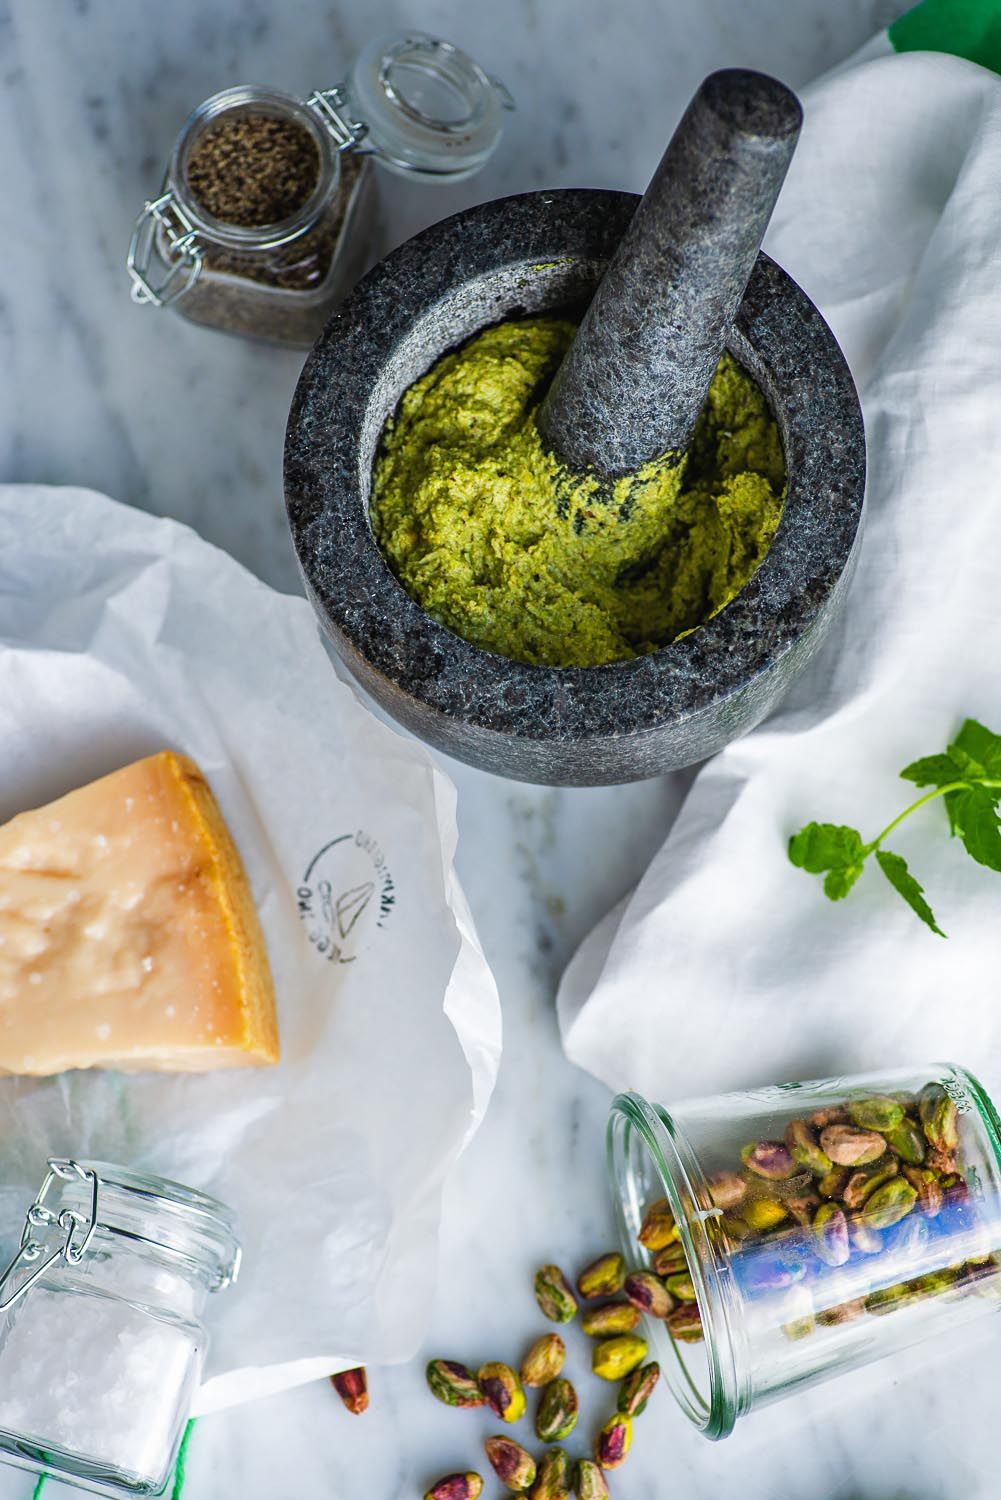 Pistachio & Mint Pesto is a variation of the traditional green pesto we all know and love